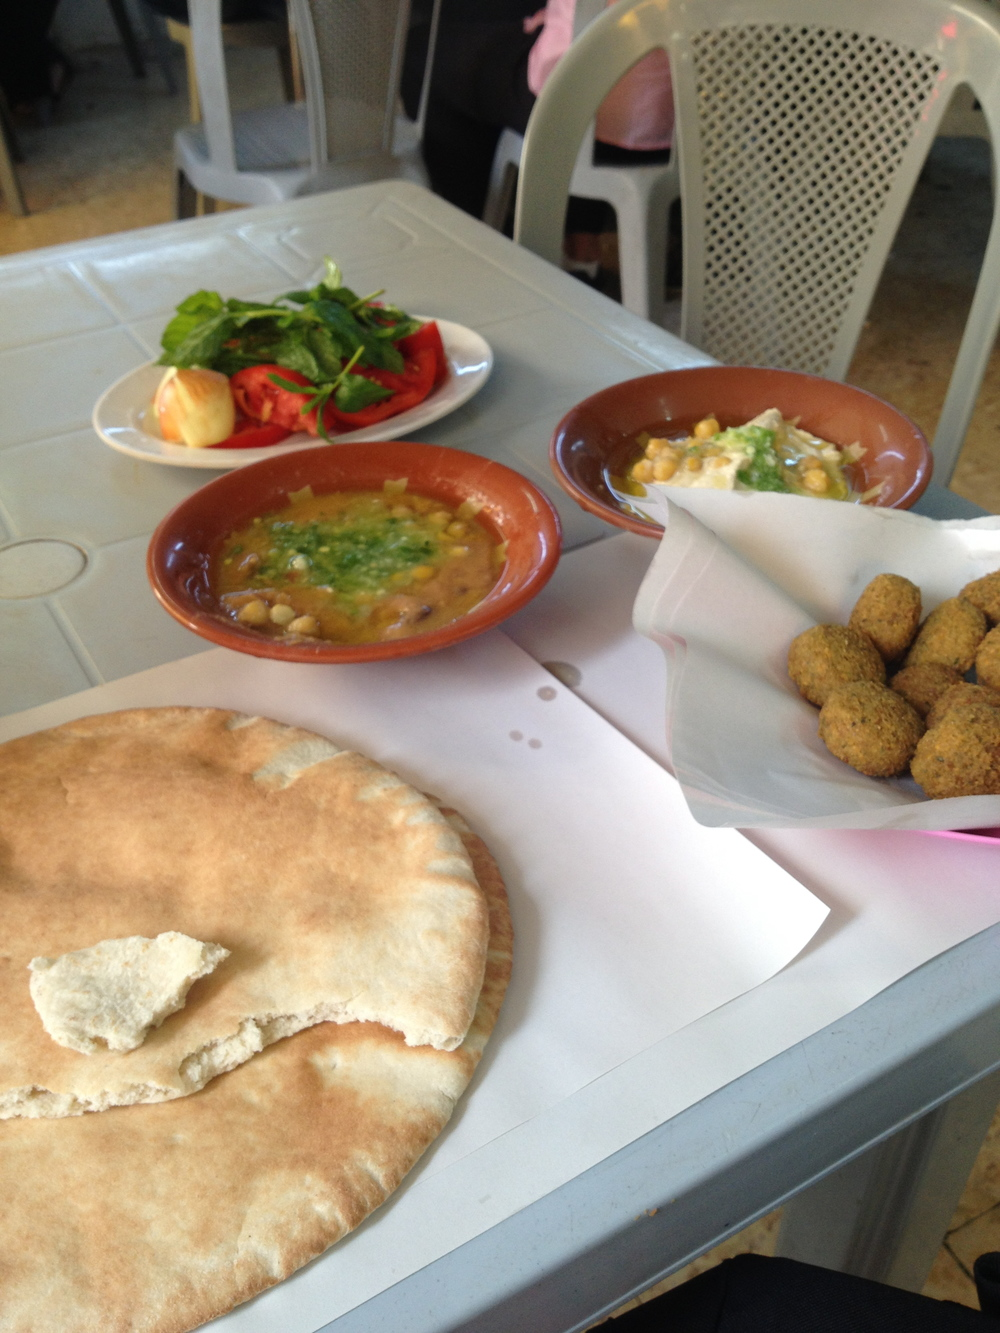 A popular restaurant in the city center named Hashem. I ate fuul, falafel, hummus, and pita.